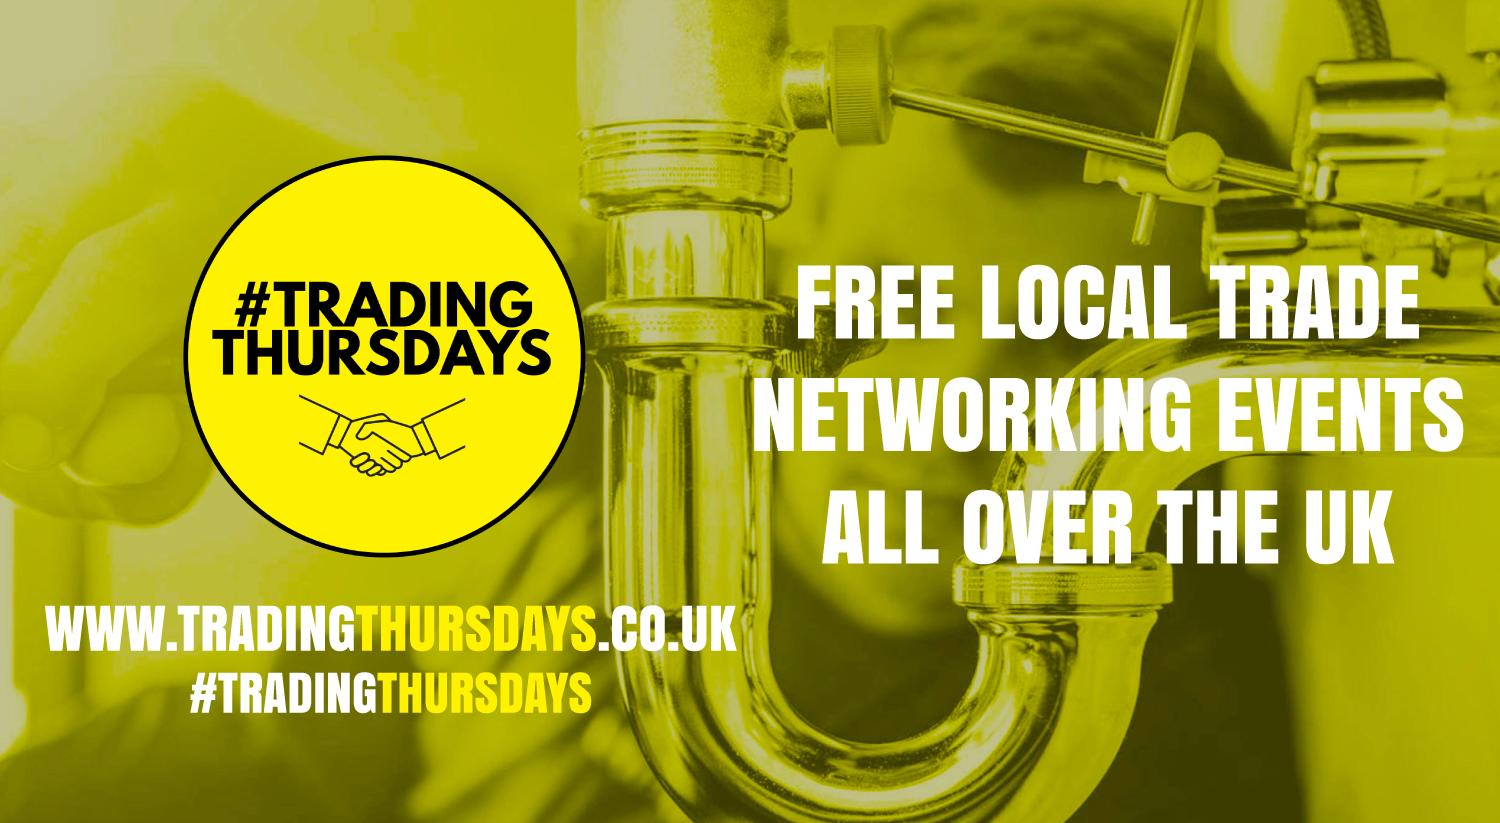 Trading Thursdays! Free networking event for traders in Stratford